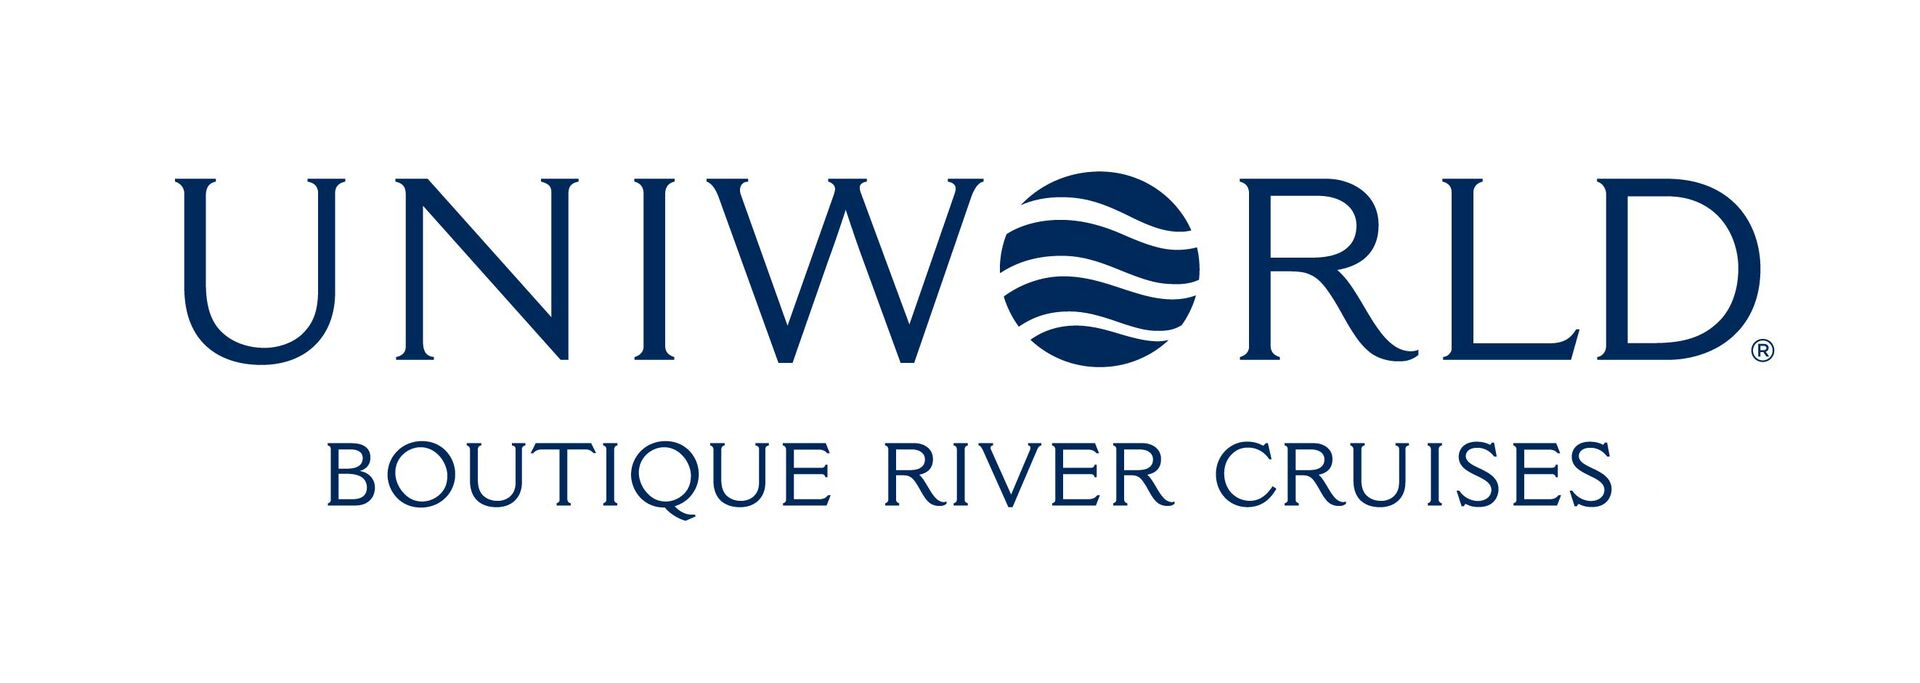 Uniworld Boutique River Cruise Logo